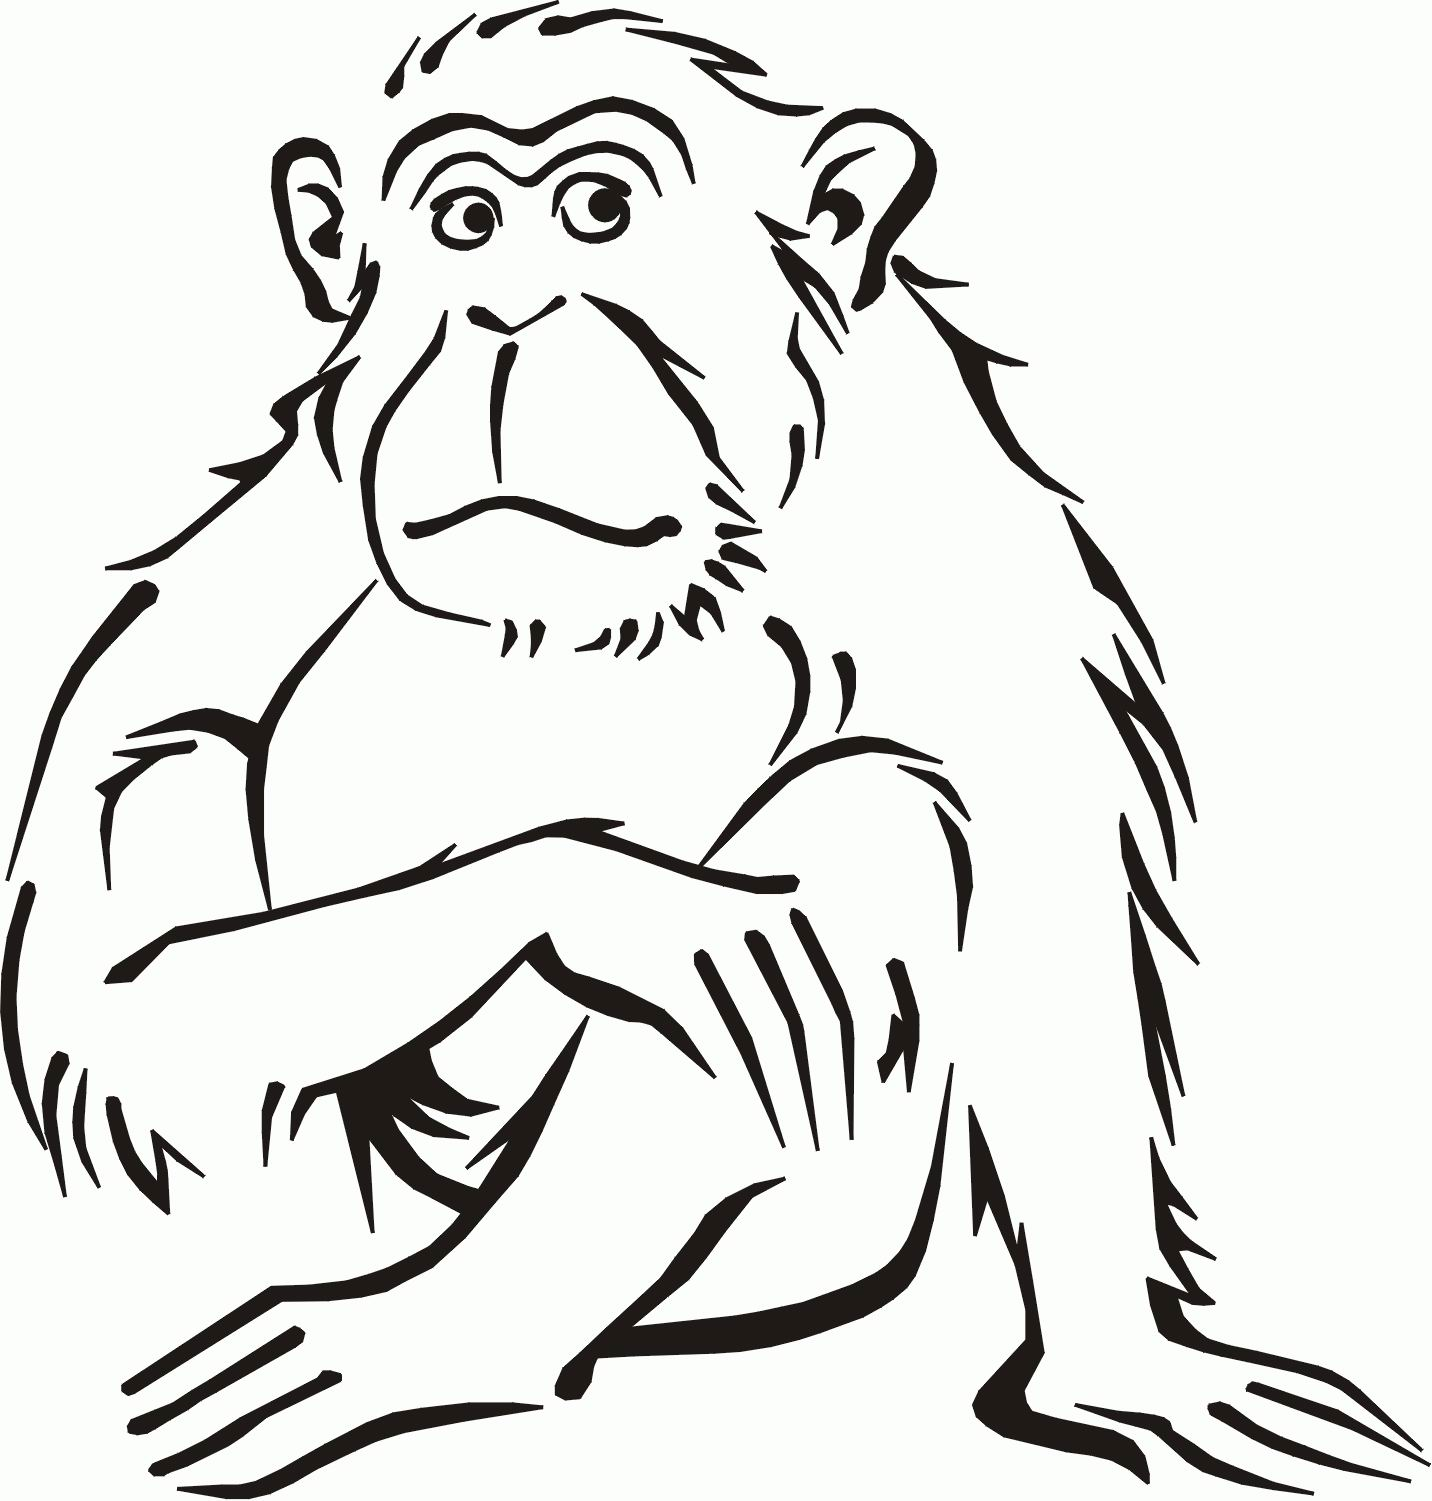 Free Printable Monkey Coloring Pages For Kids | Animal Place